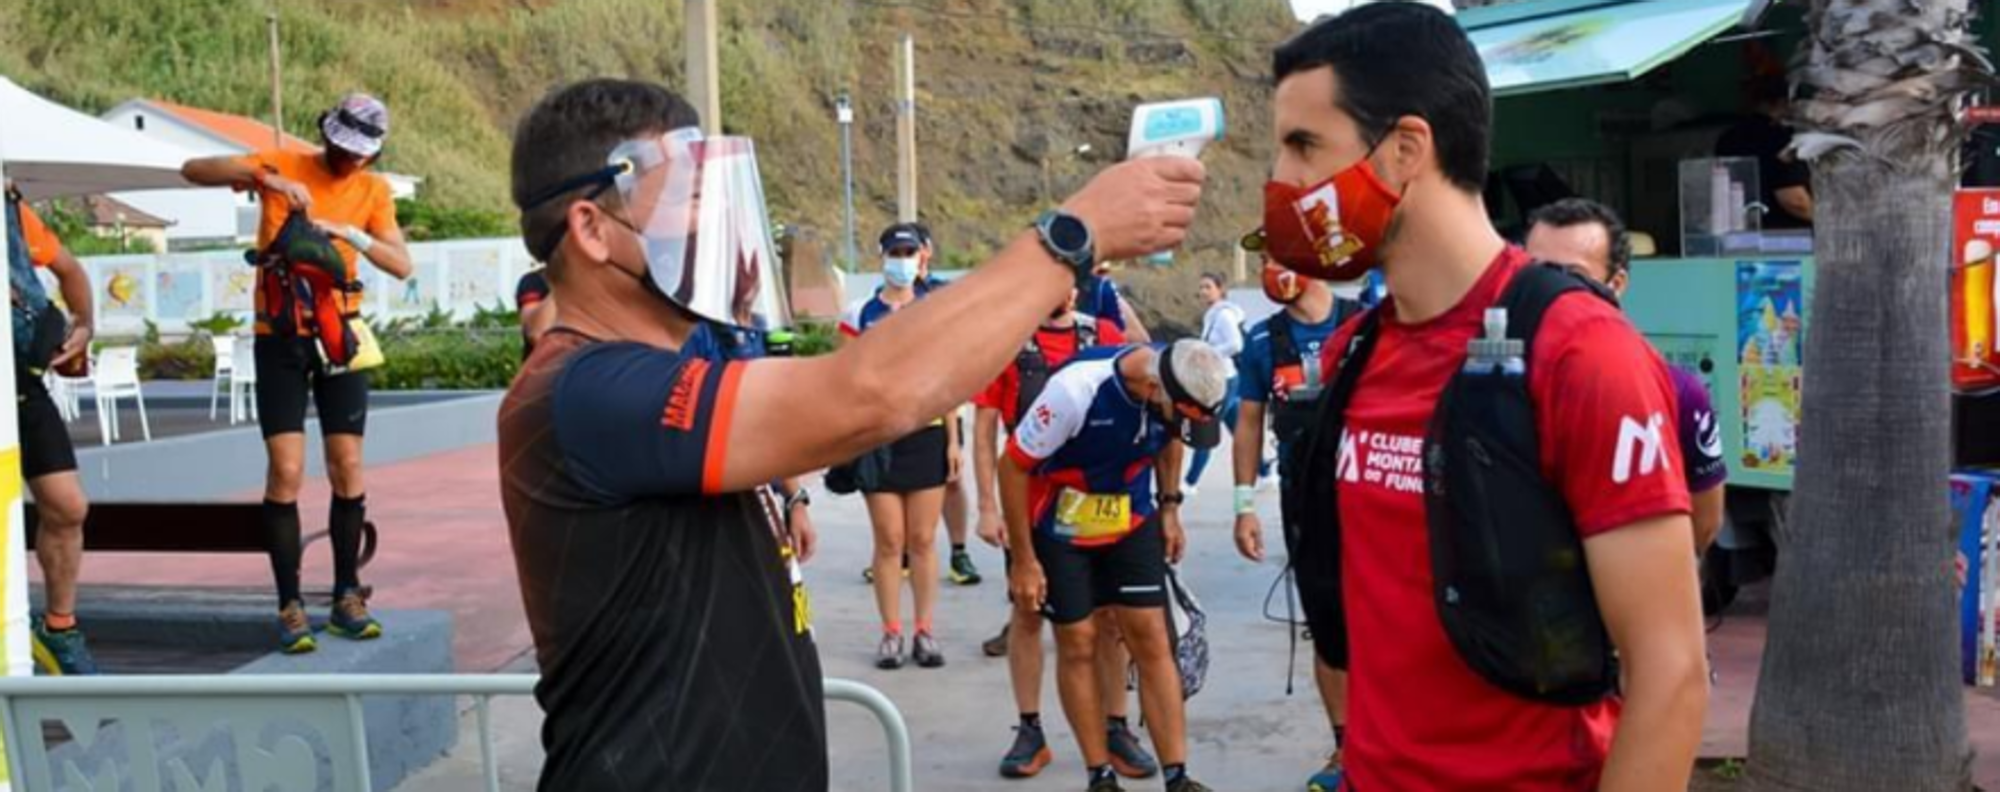 The new normal in trail running involves temperature checks and social distancing rules. Photo: Aurelio Davide